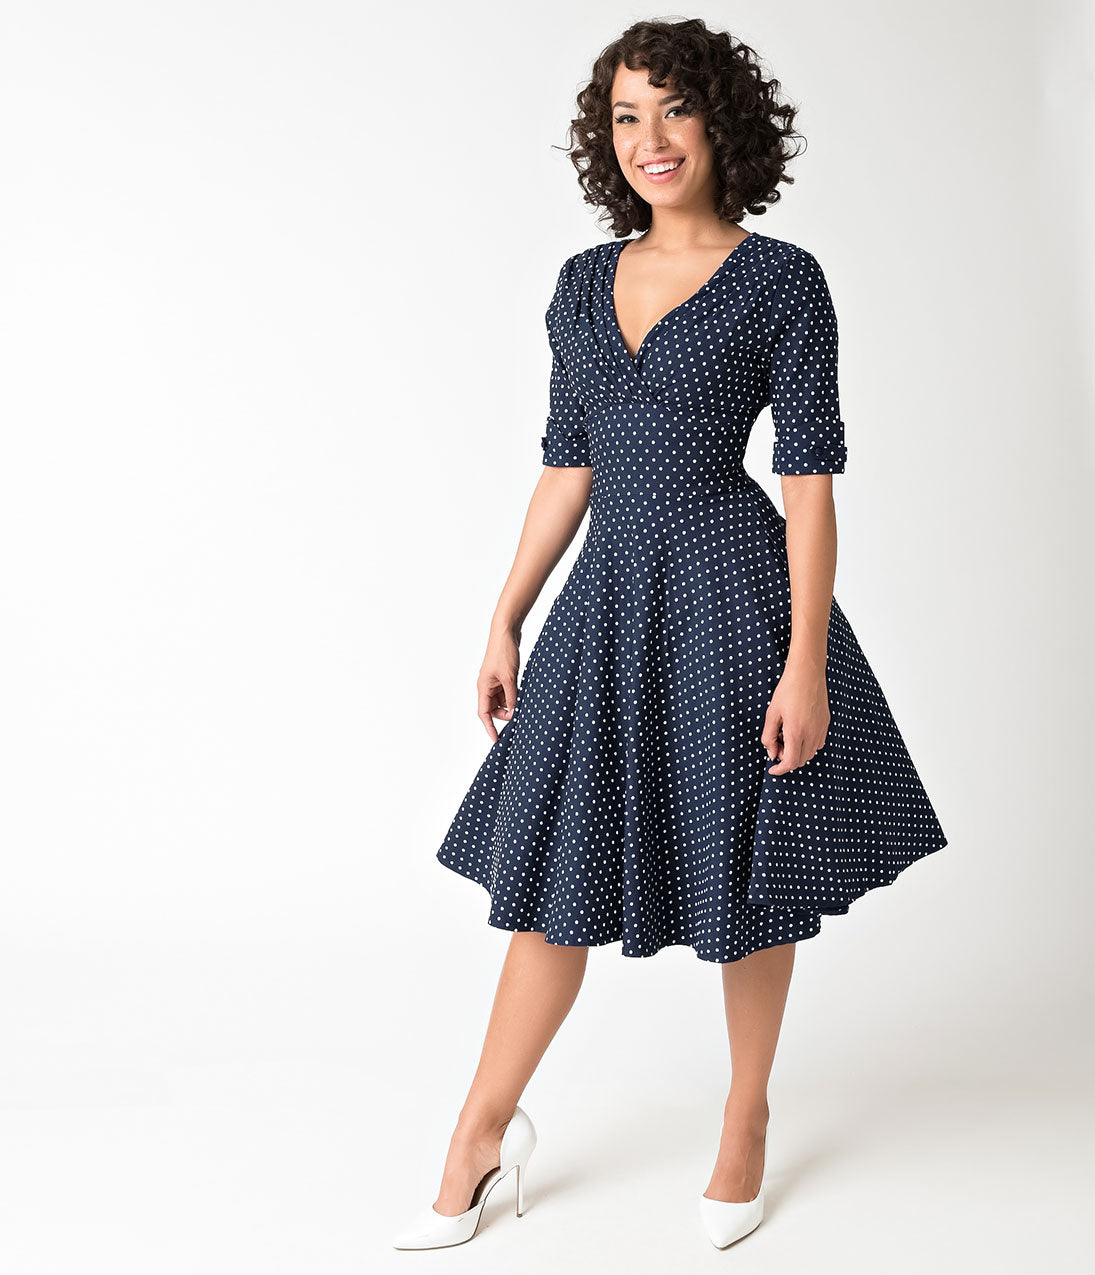 Vintage Polka Dot Dresses – 50s Spotty and Ditsy Prints 1950S Navy  White Dot Delores Swing Dress With Sleeves $92.00 AT vintagedancer.com